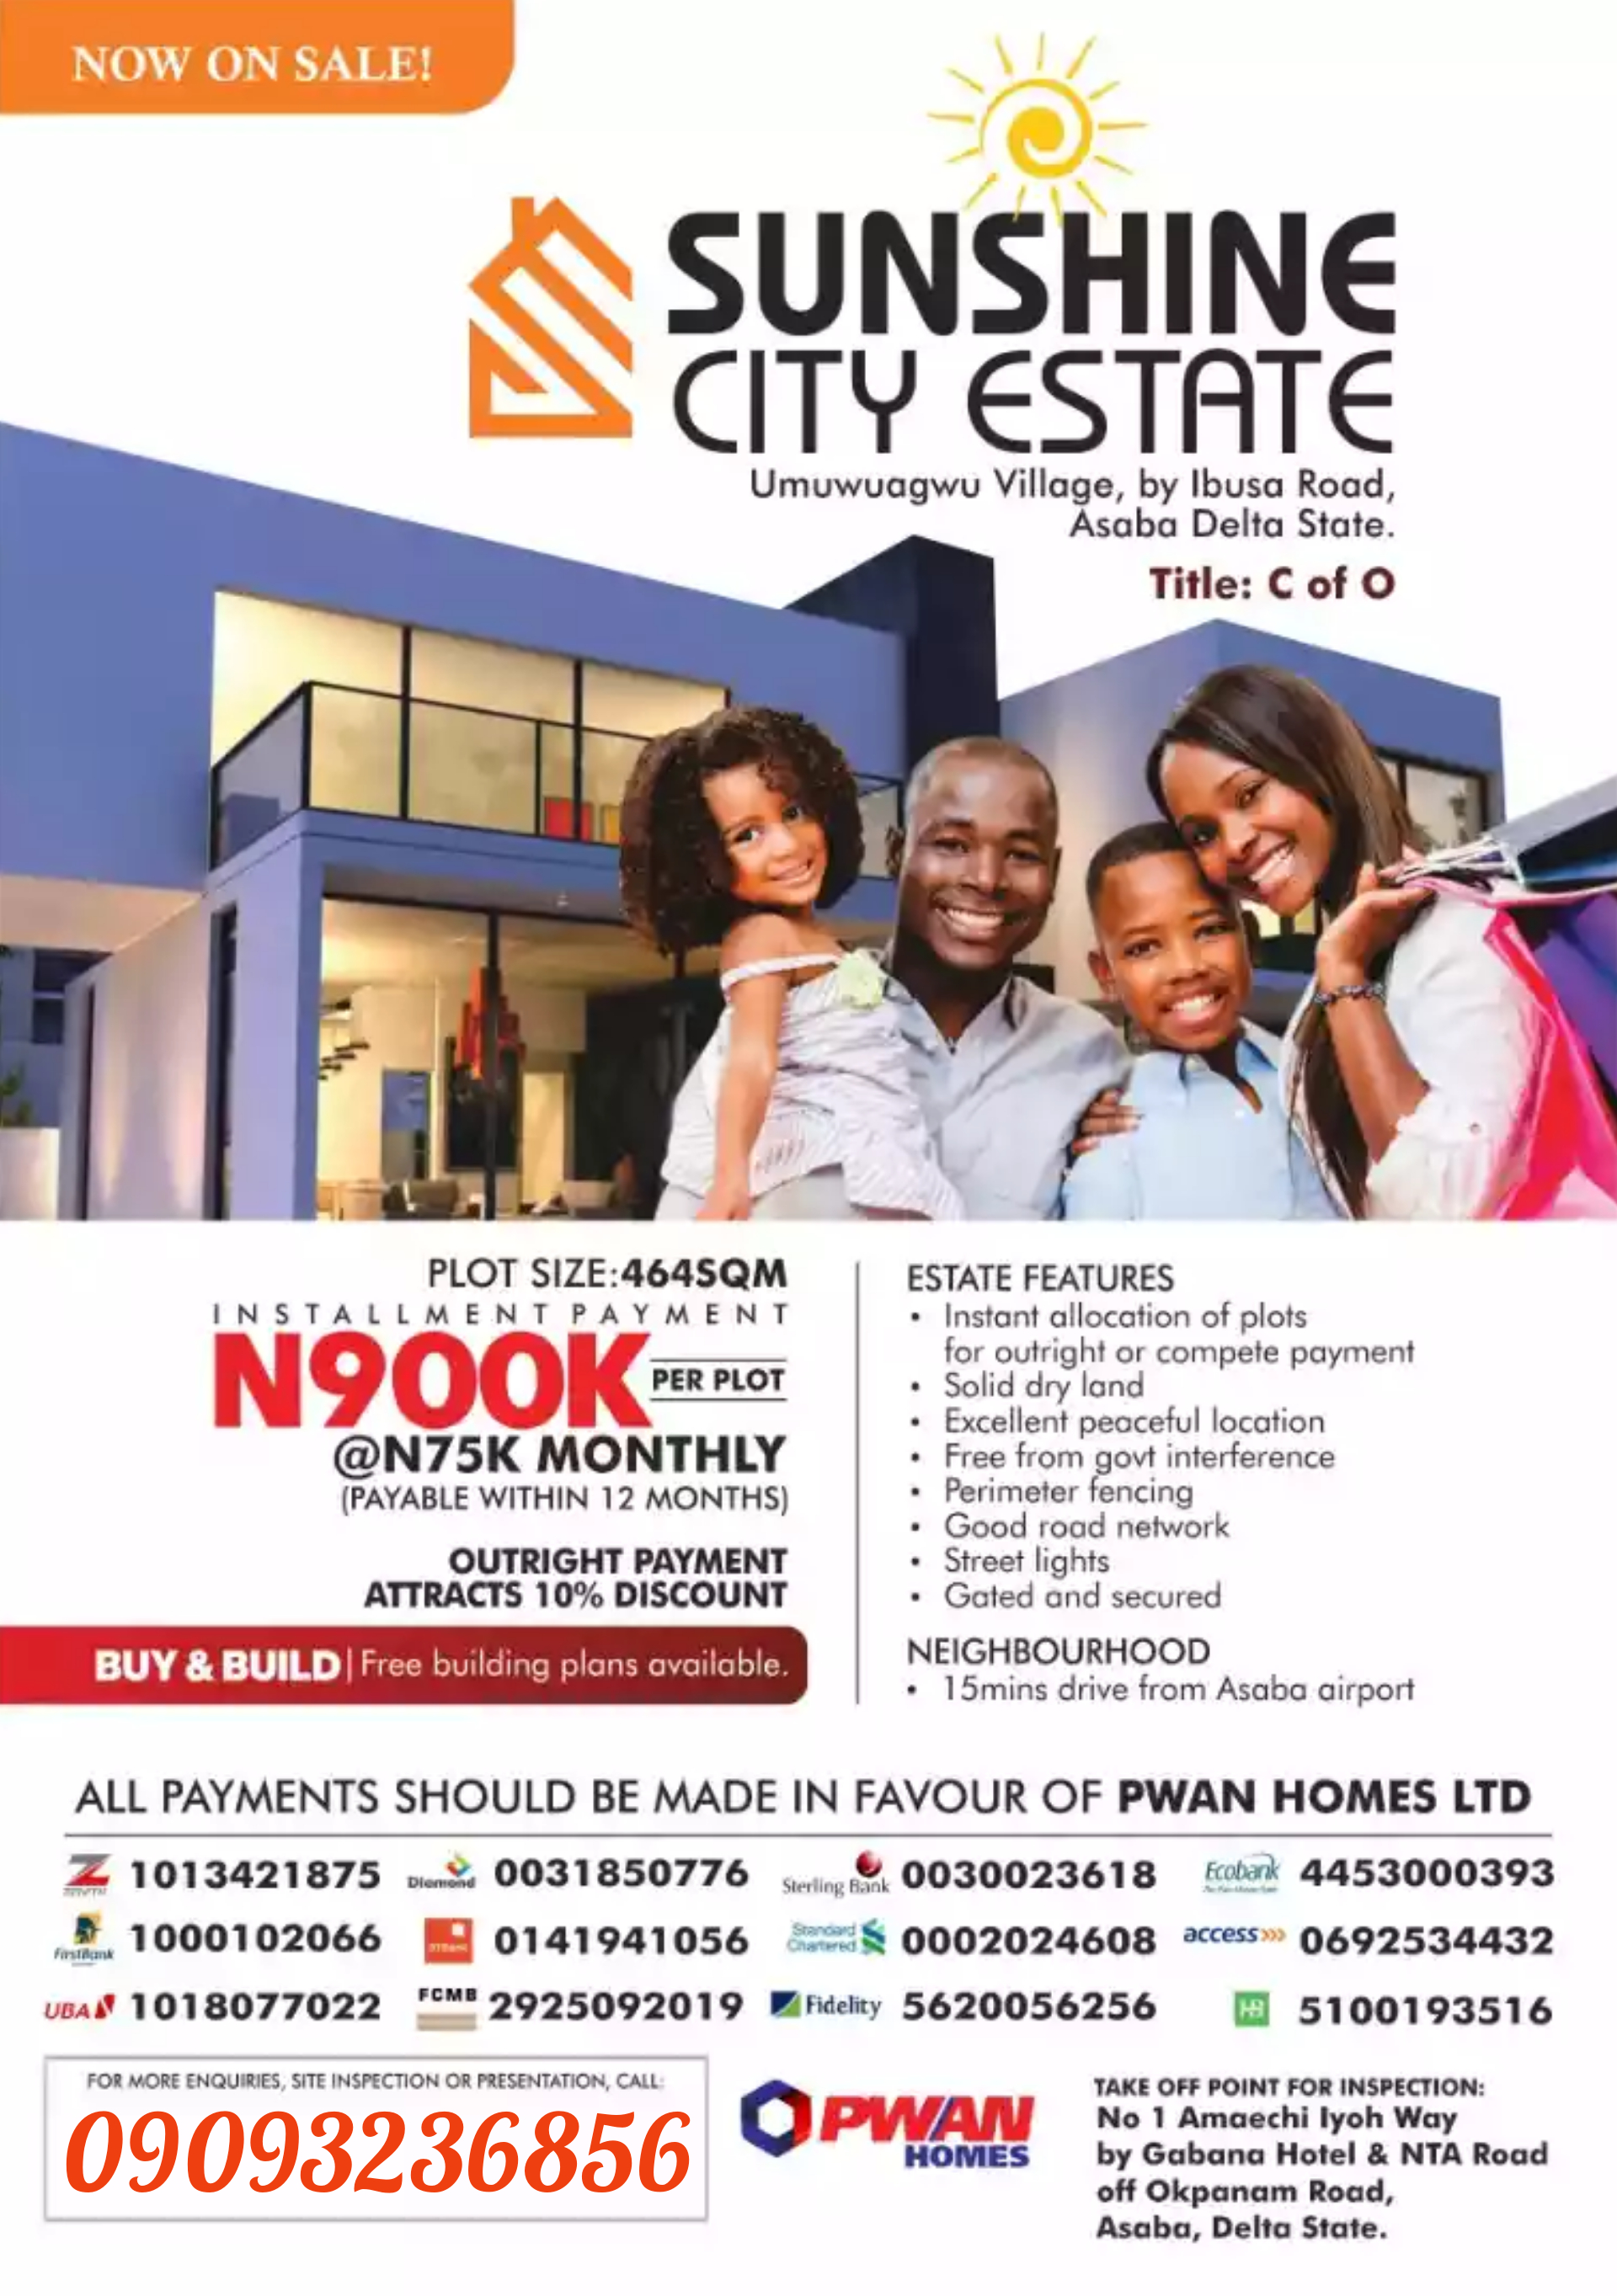 Buy plots of land in SUNSHINE CITY ESTATE ASABA DELTA STATE